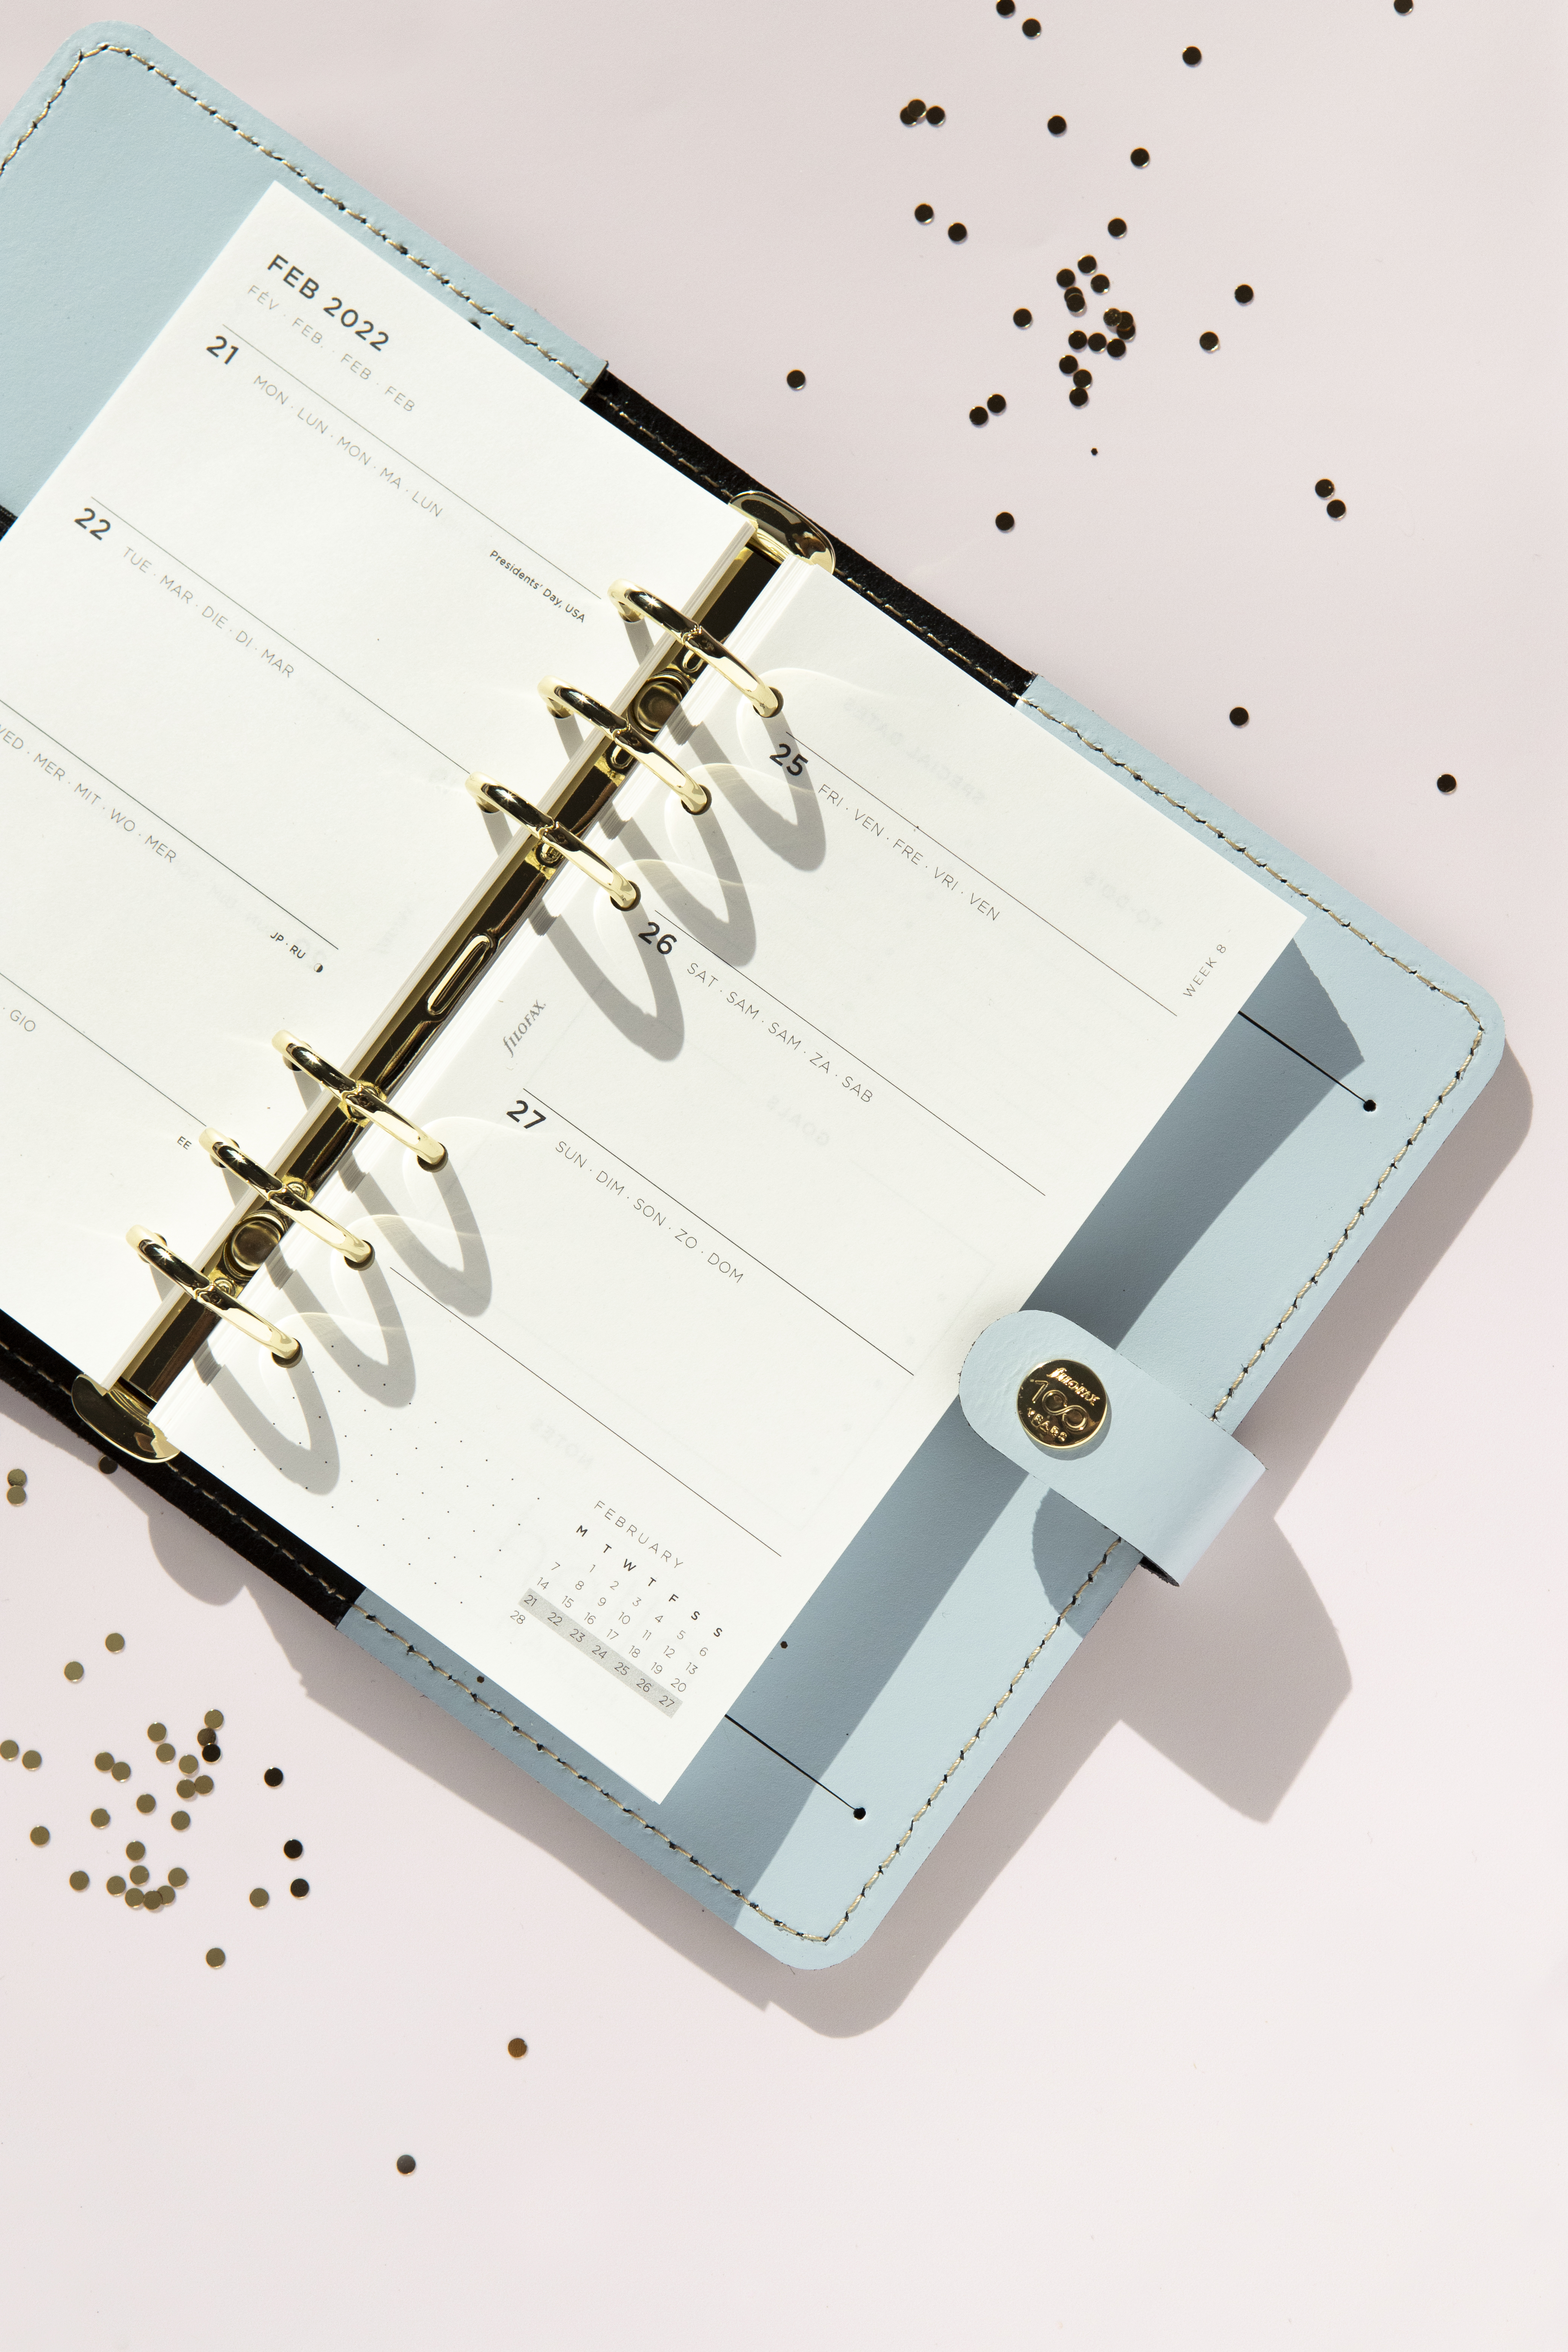 Filofax Centennial Collection Organiser 2022 Refill - The Original Organiser Personal Sky _SKU 029603_ - Double Page Spread view_Lifestyle image3